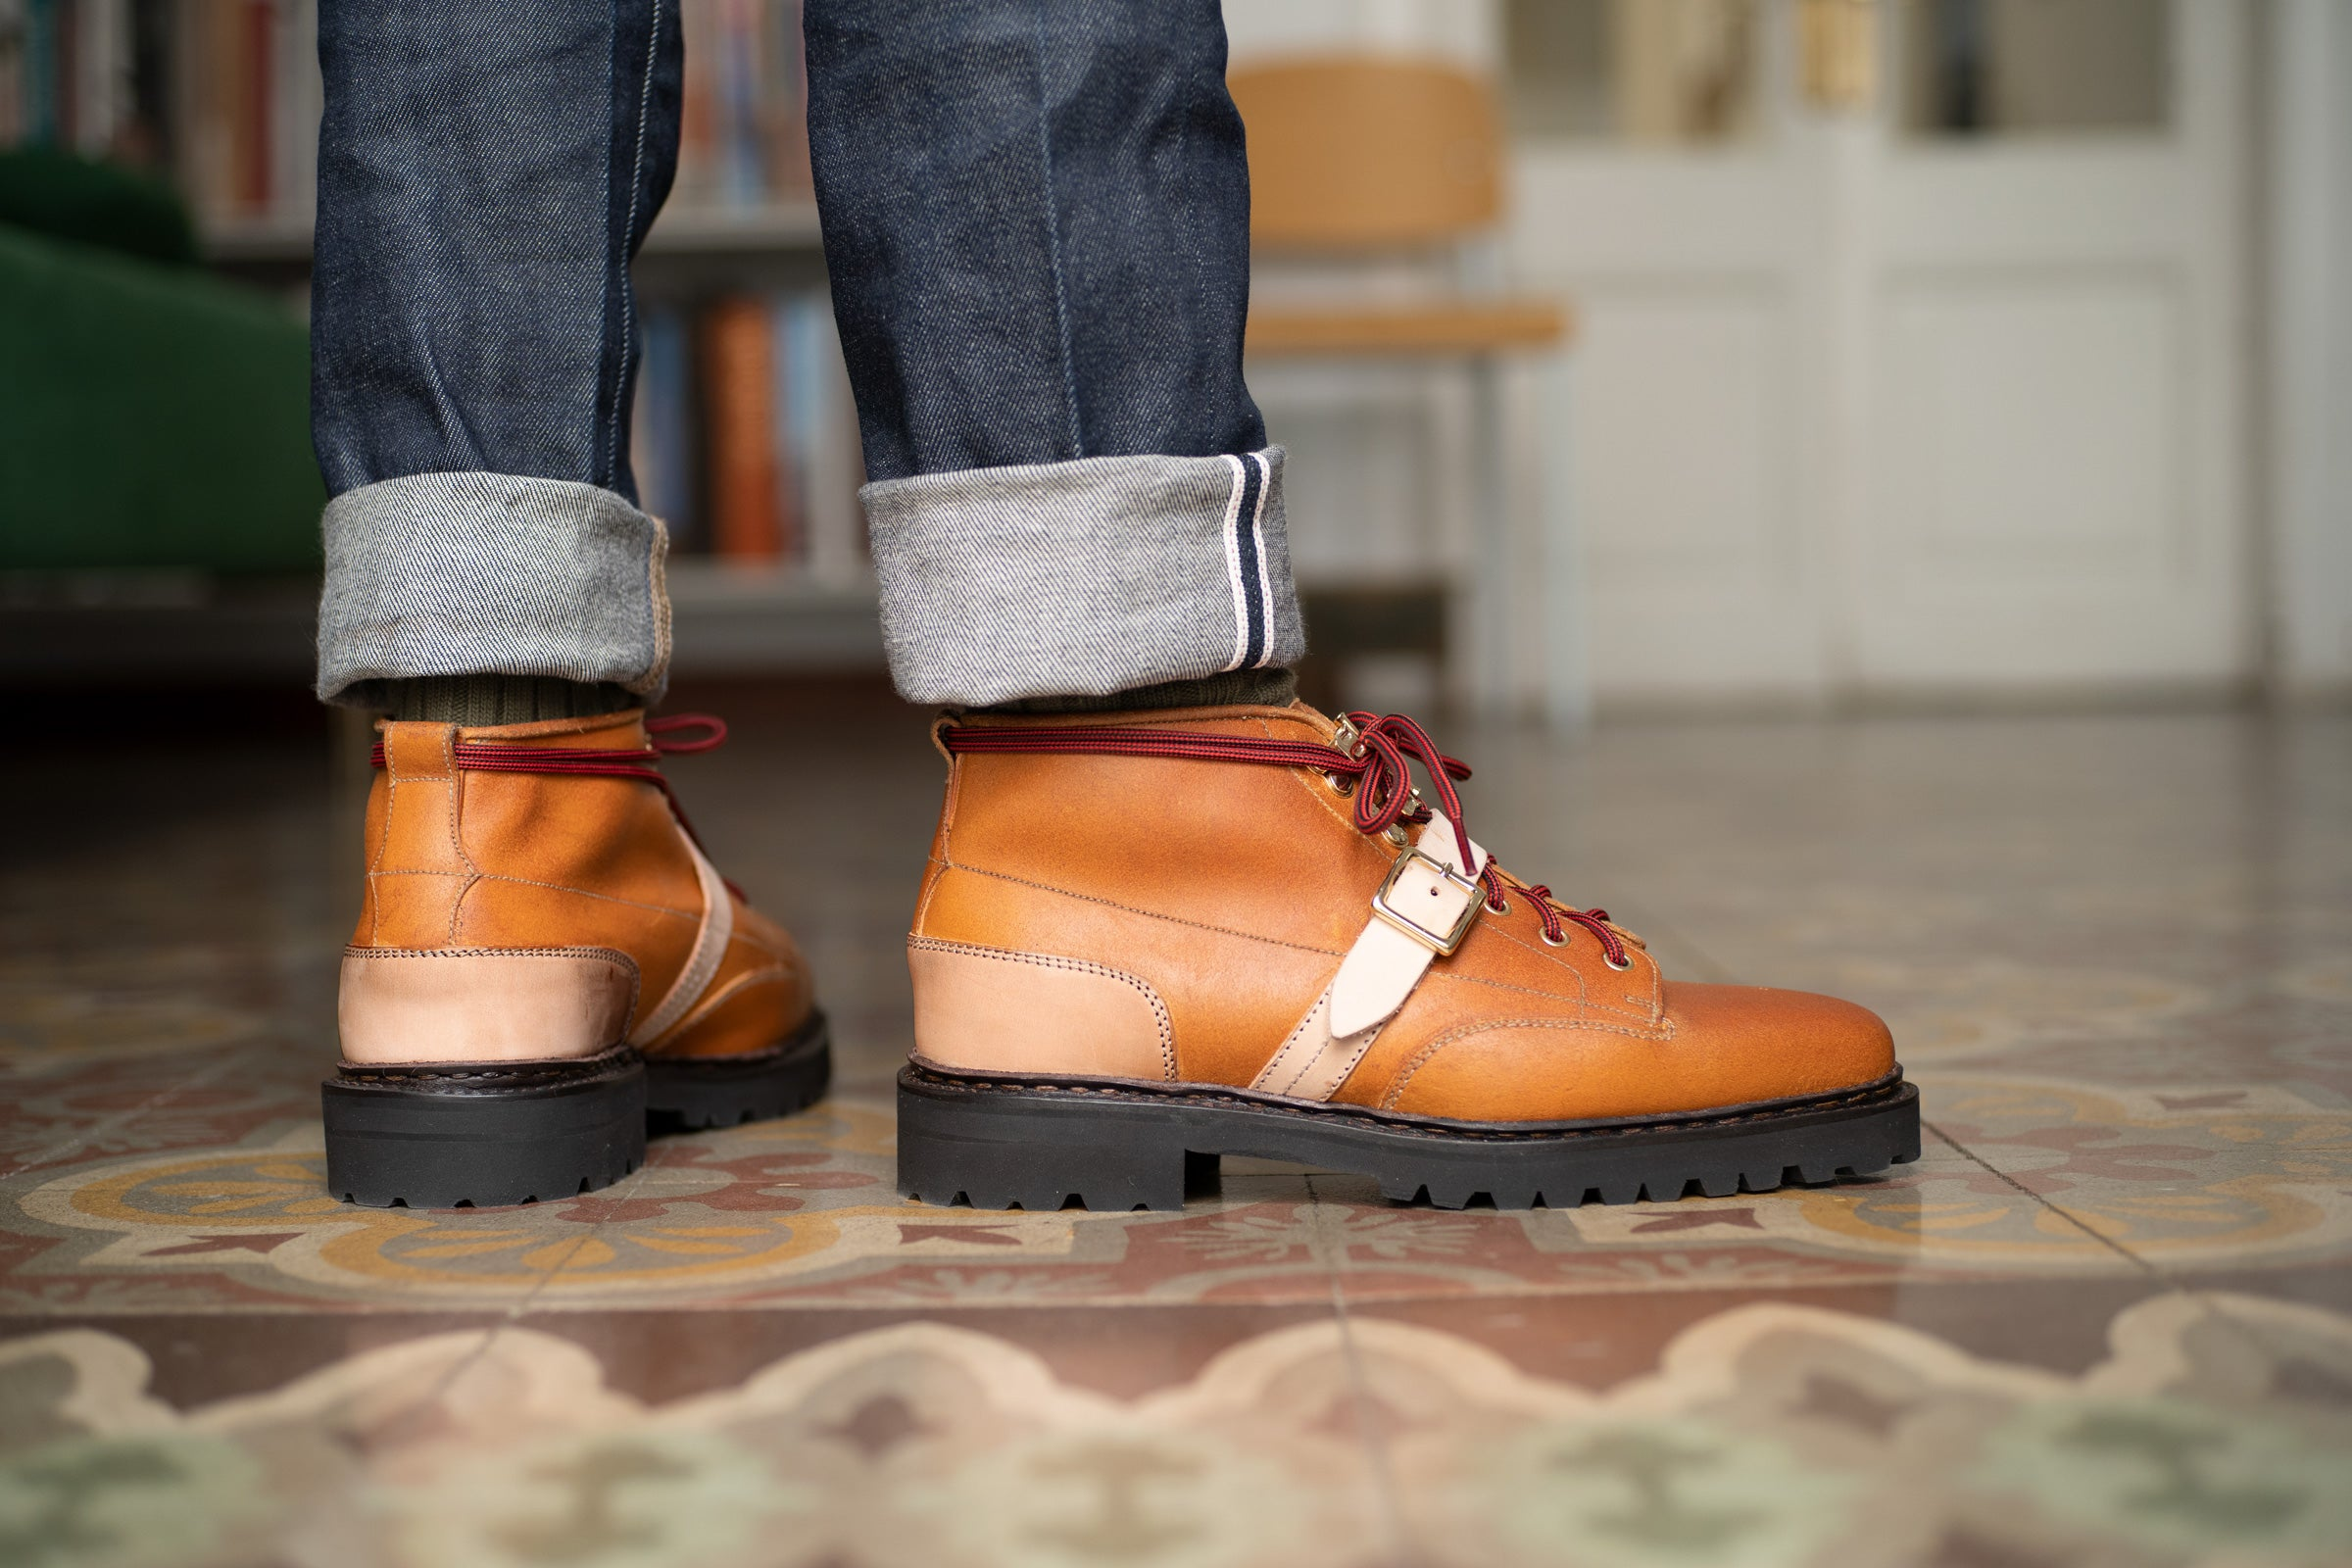 Sean Norwegian Welted Mountain Boot by Norman Vilalta Bespoke Shoemakers